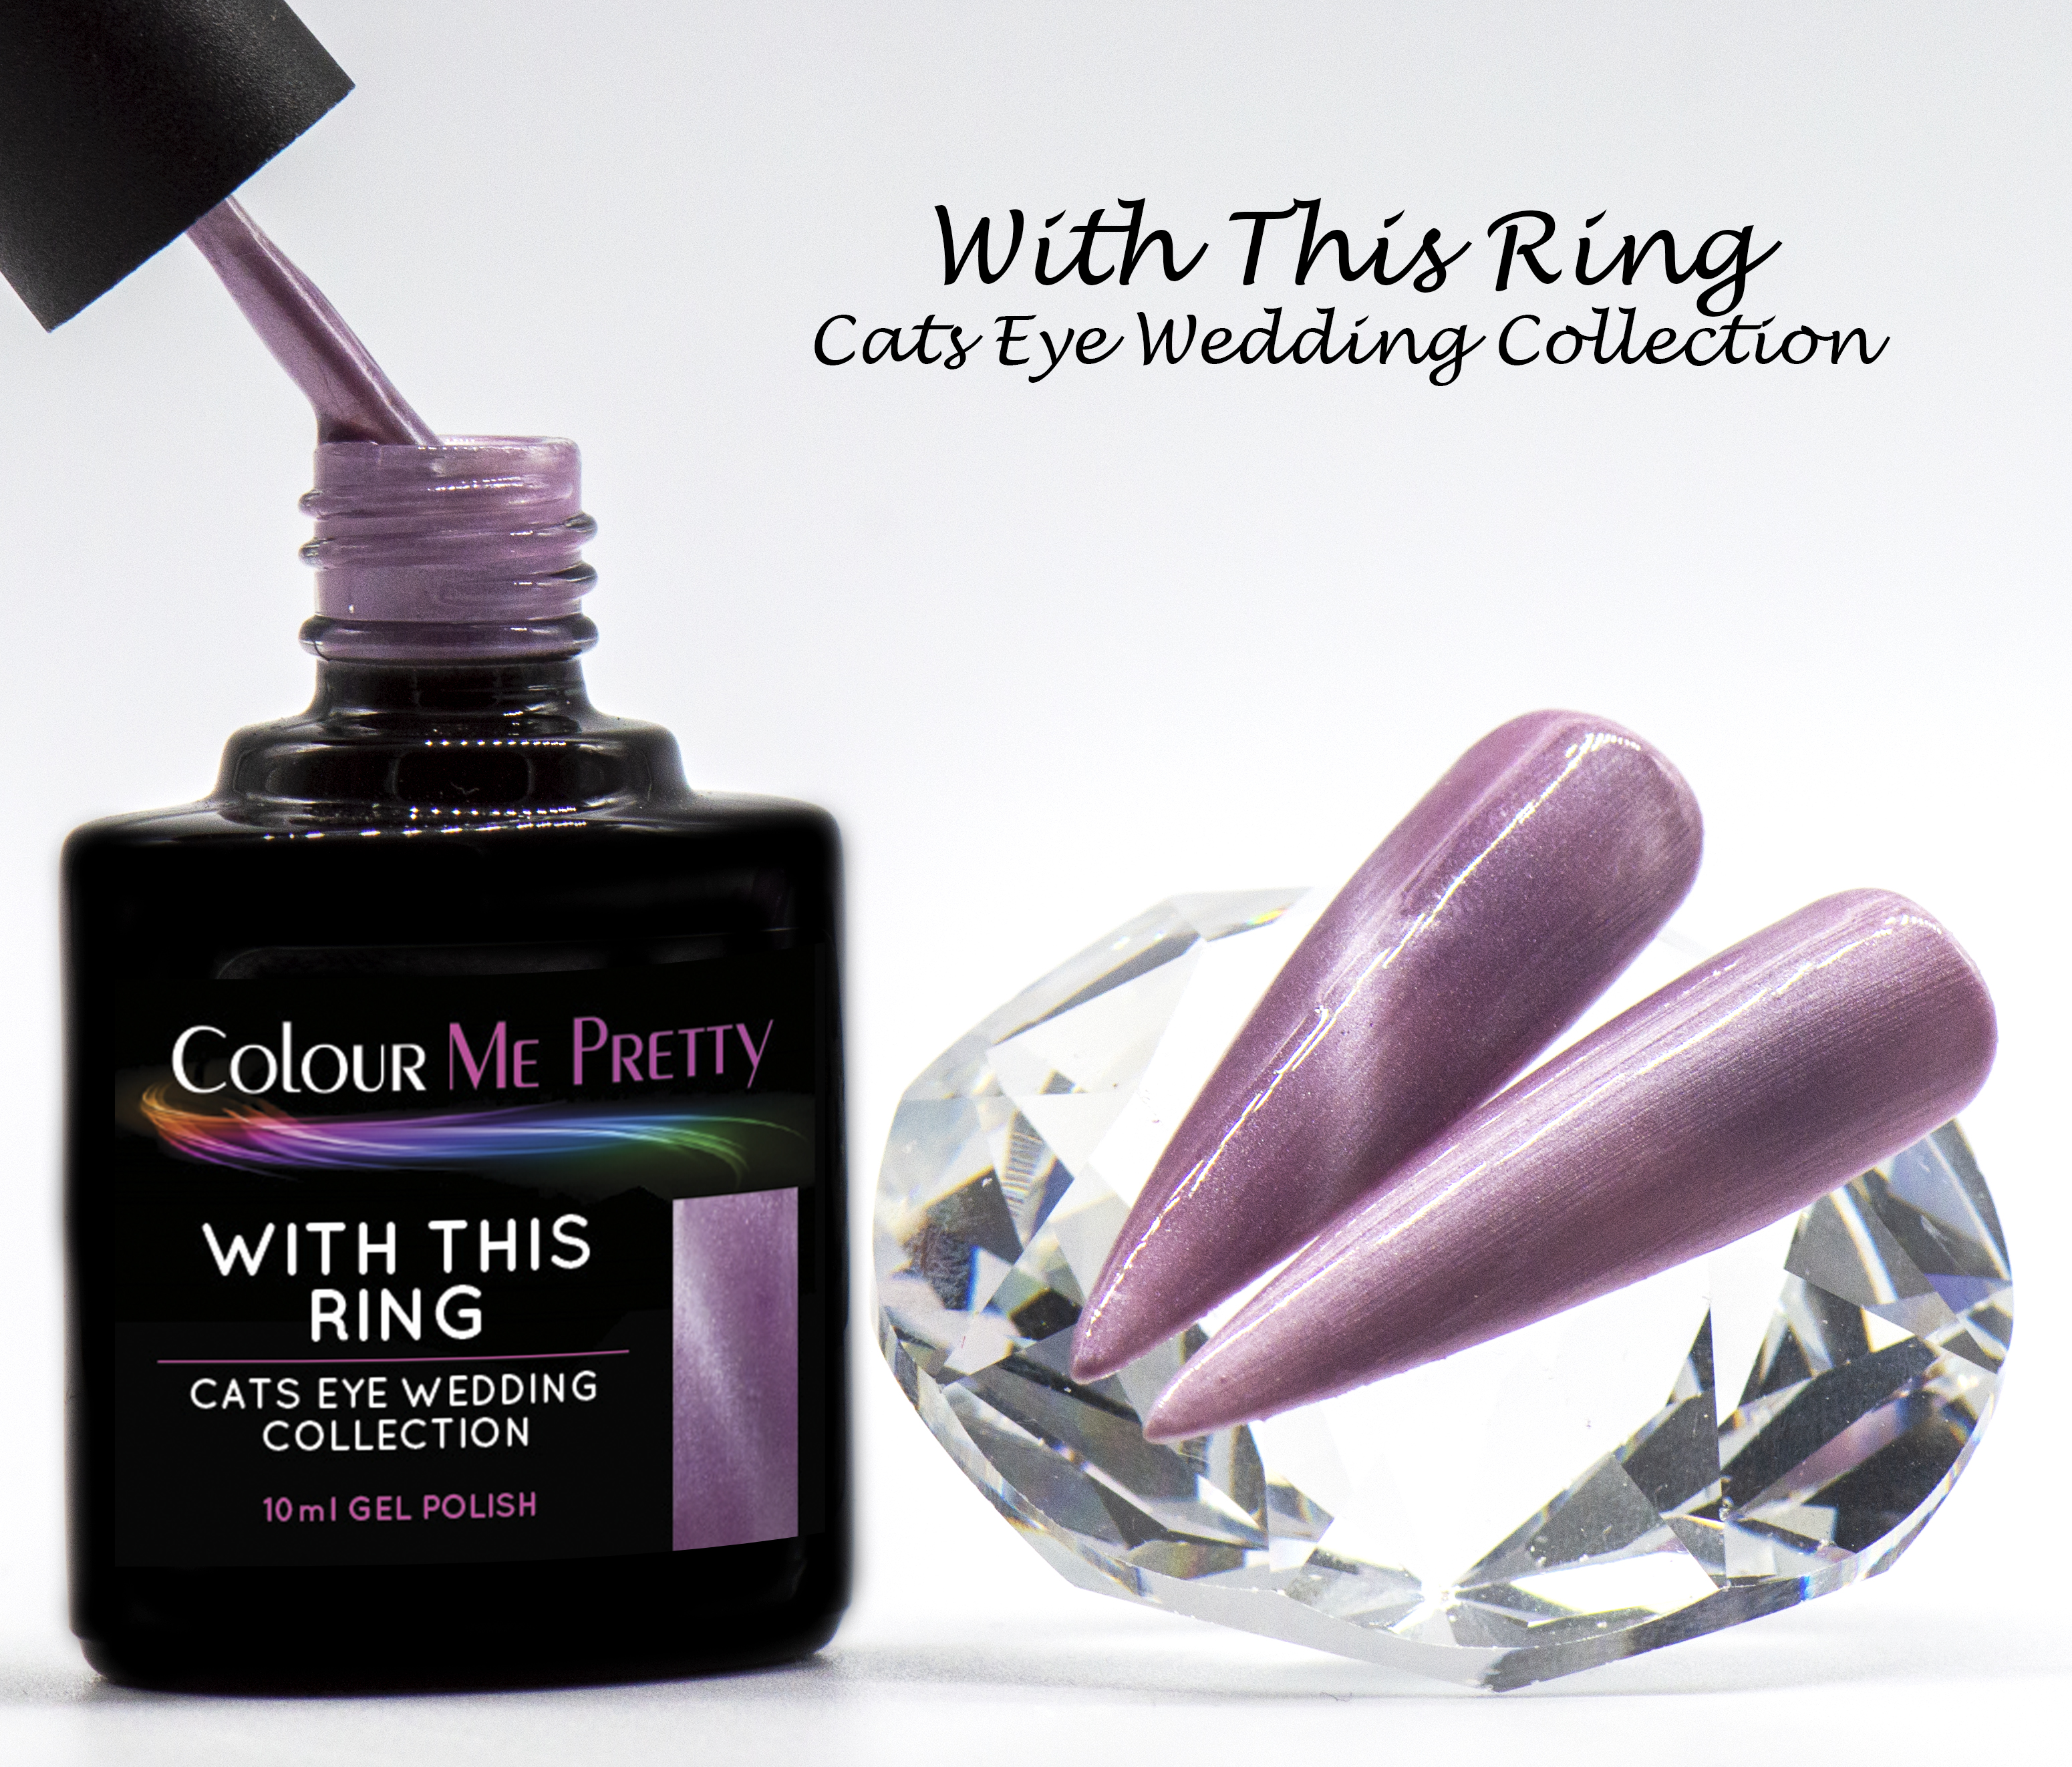 Cats Eye Wedding With This Ring